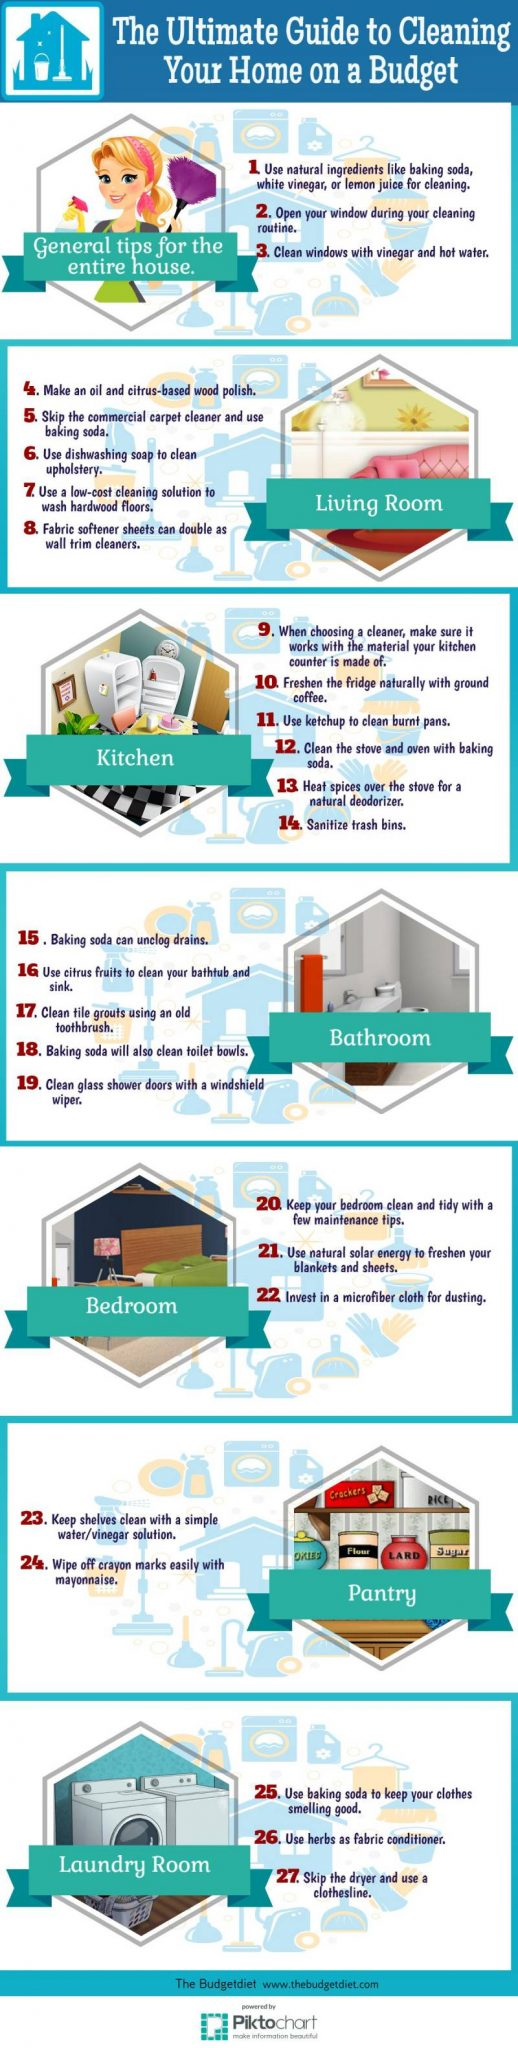 Your ultimate guide on cleaning your home naturally and on budget. You will find tips here that will surely make your life easier.